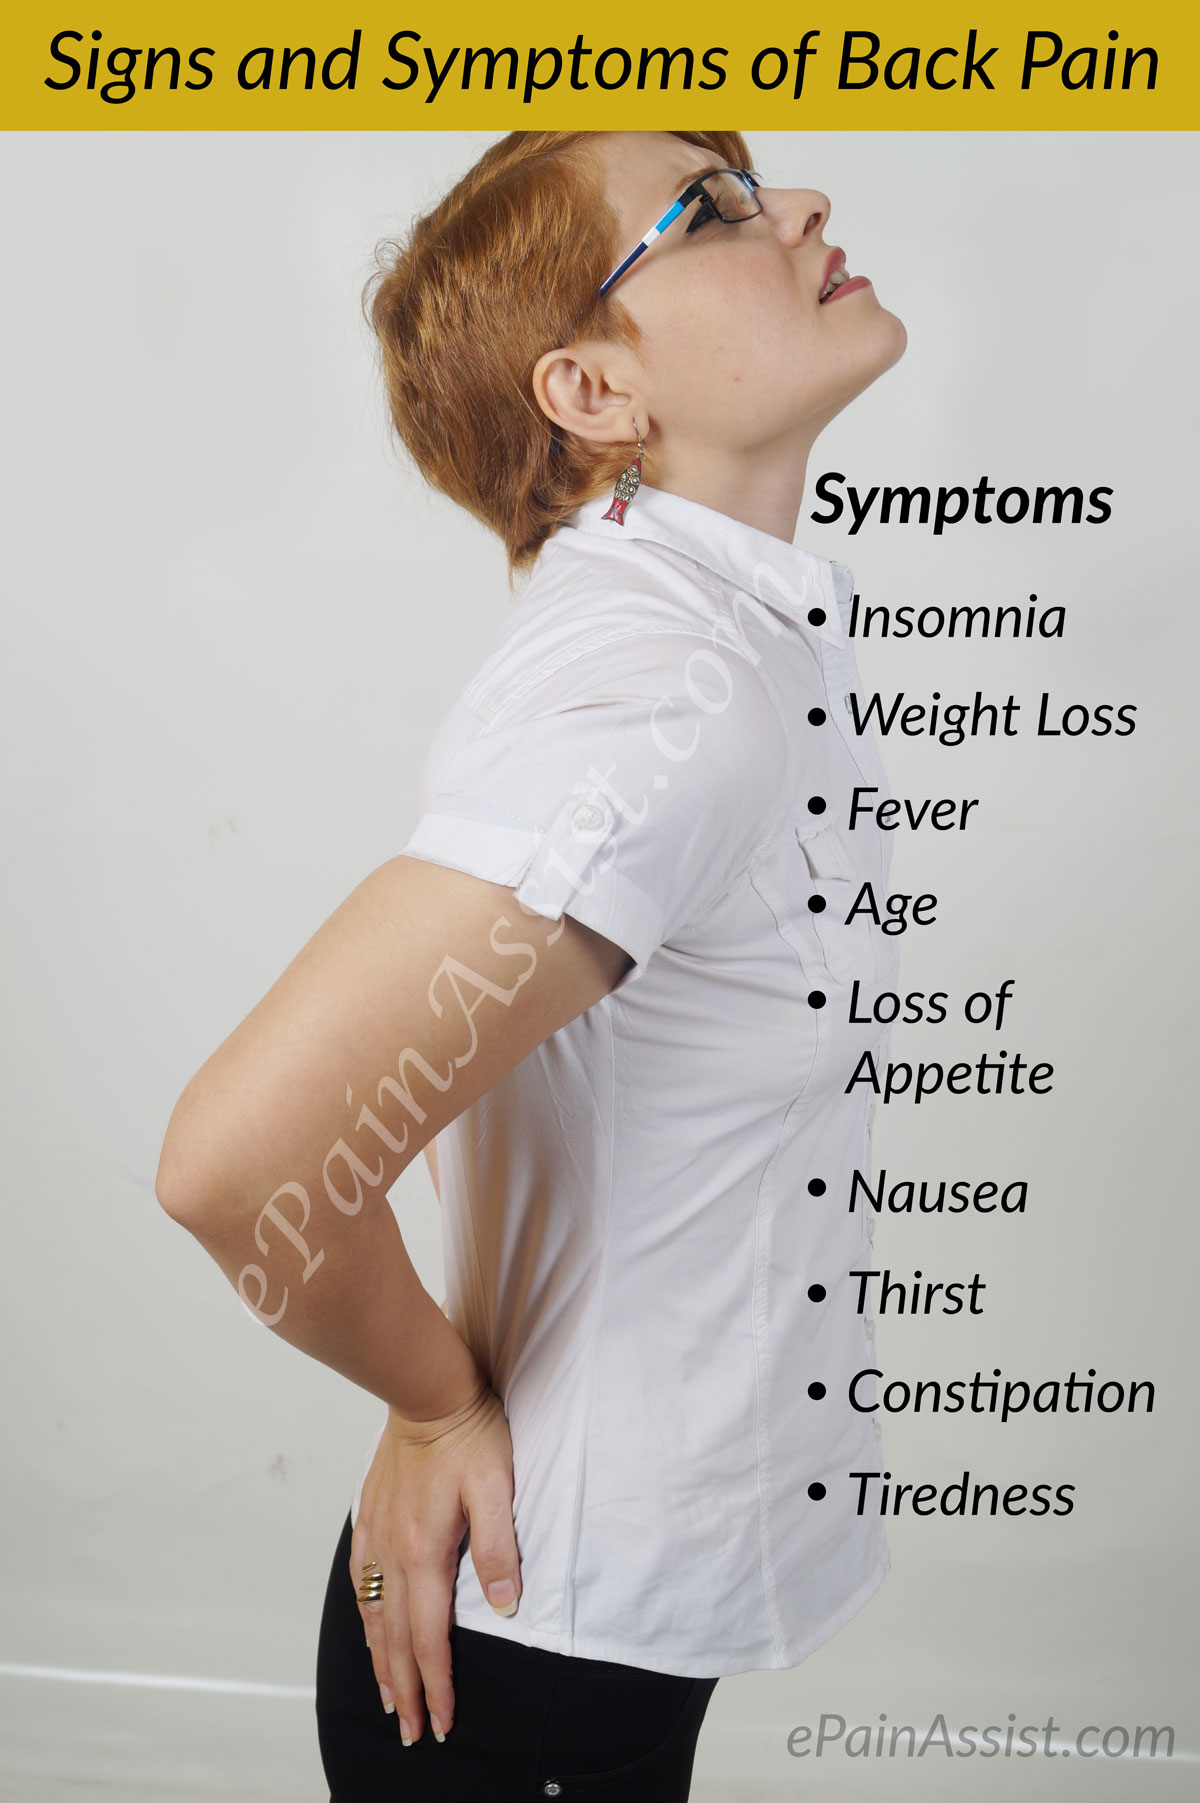 Signs and Symptoms of Back Pain or Backache